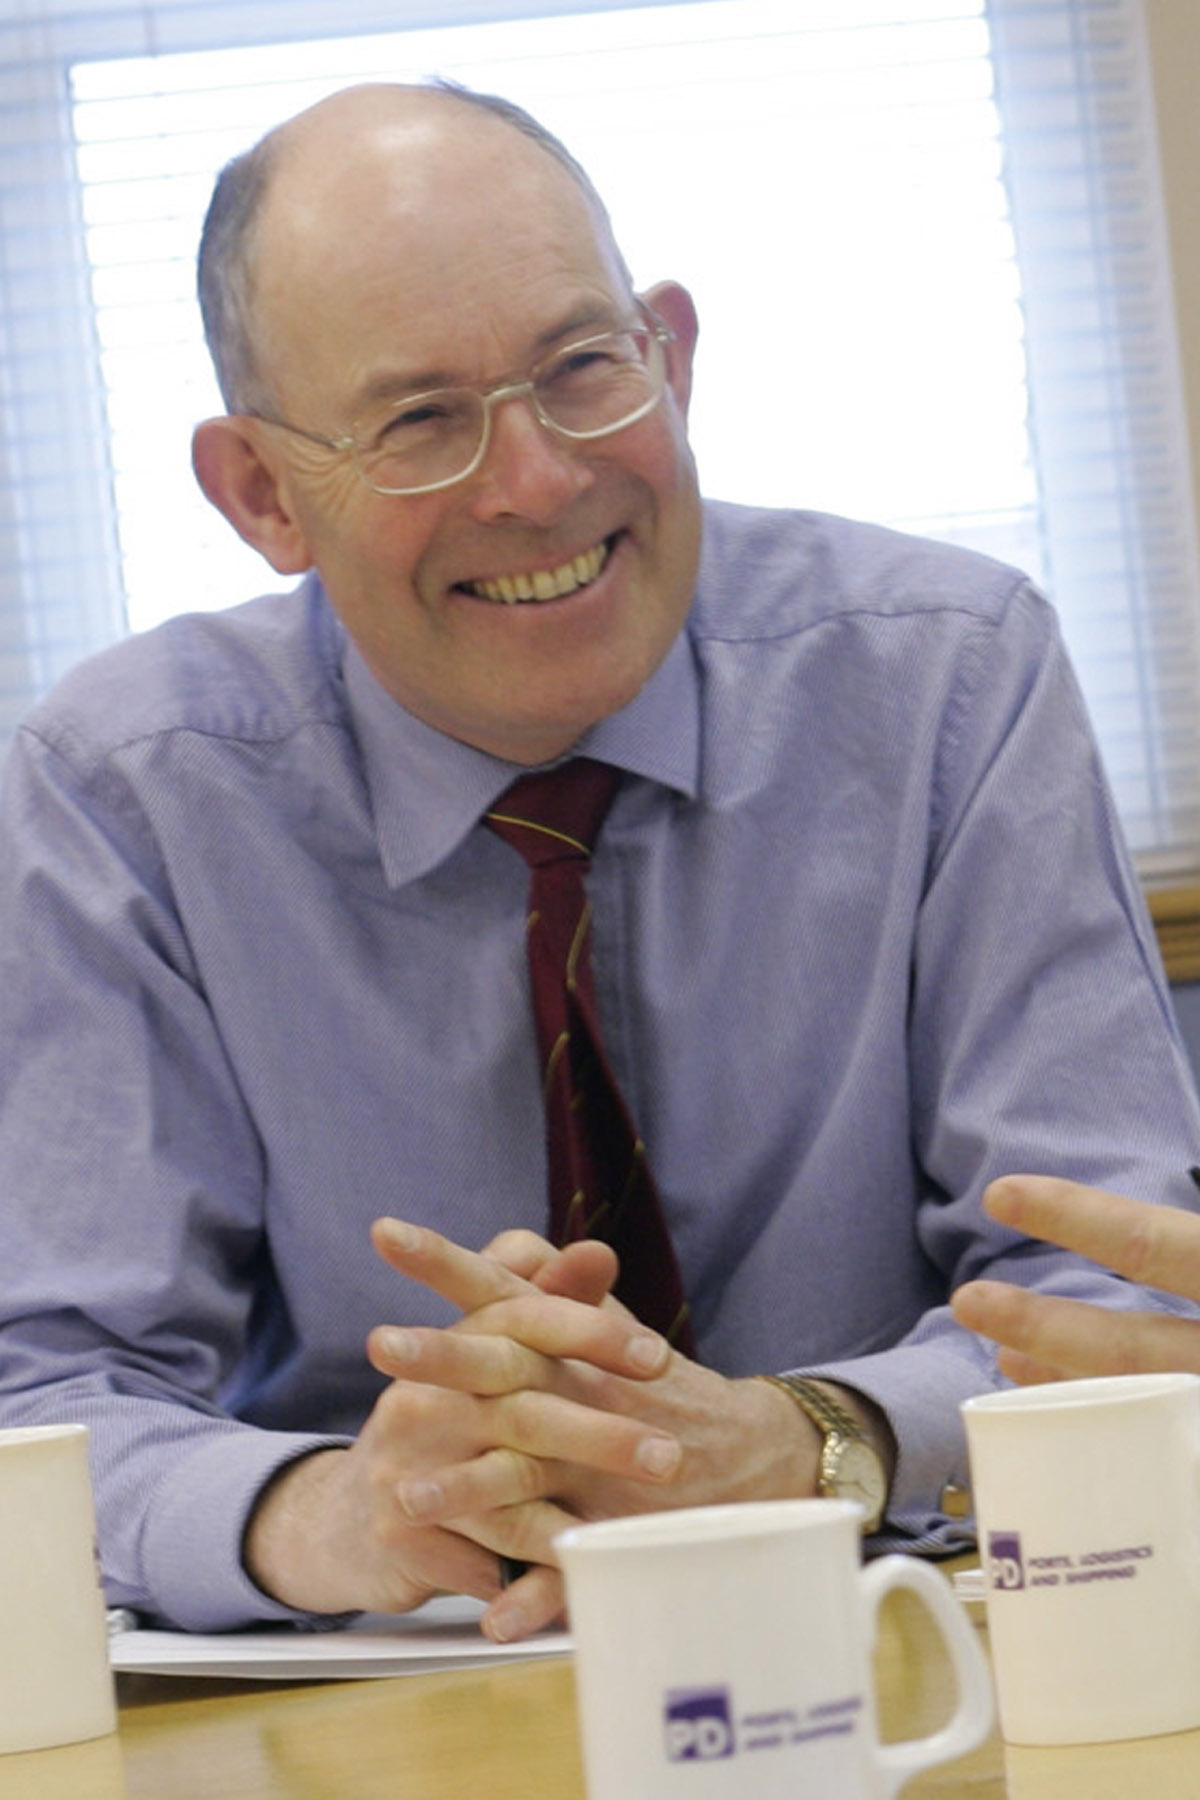 Martyn Pellew to head up British Chambers of Commerce